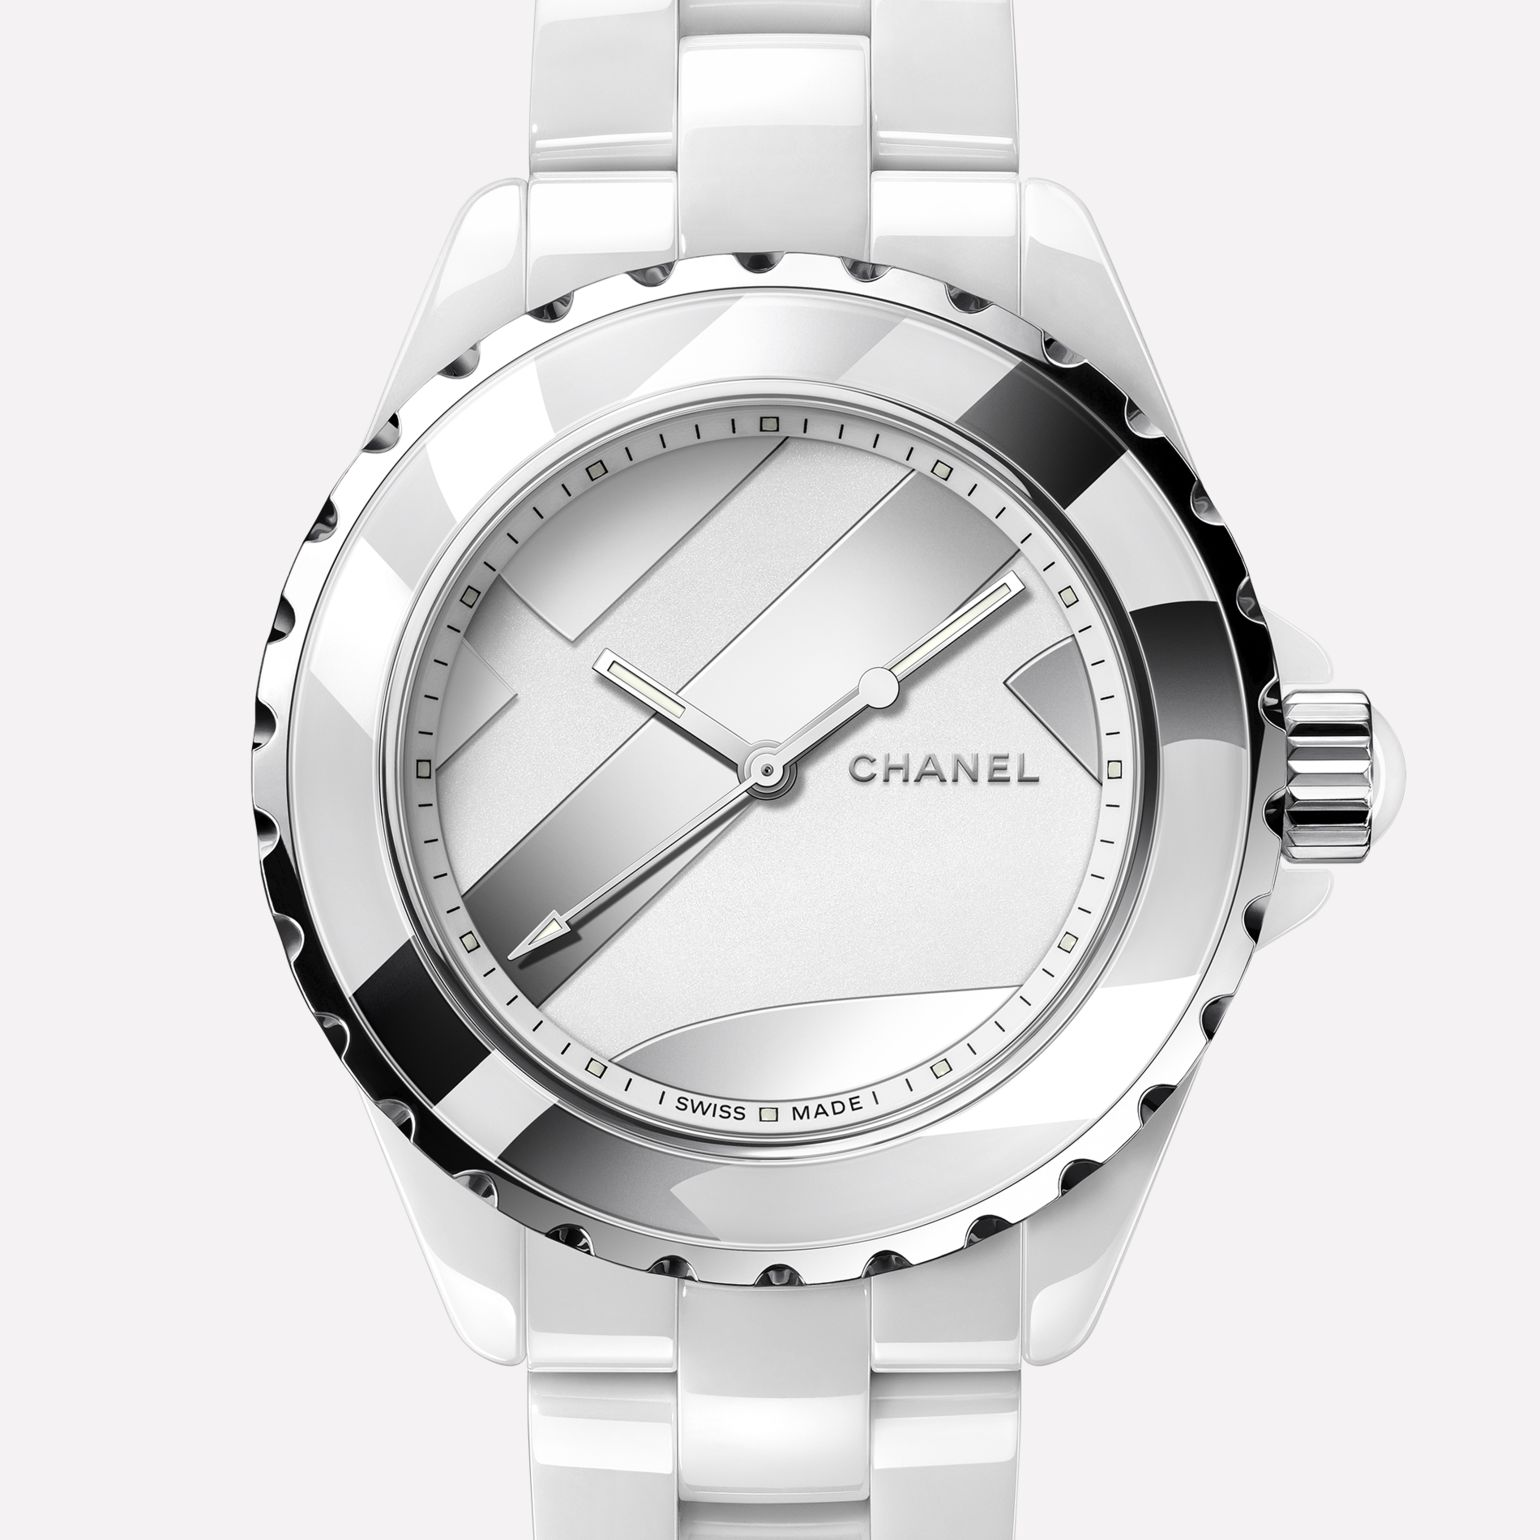 quartz swiss watches ceramic watch image chanel collection ref white